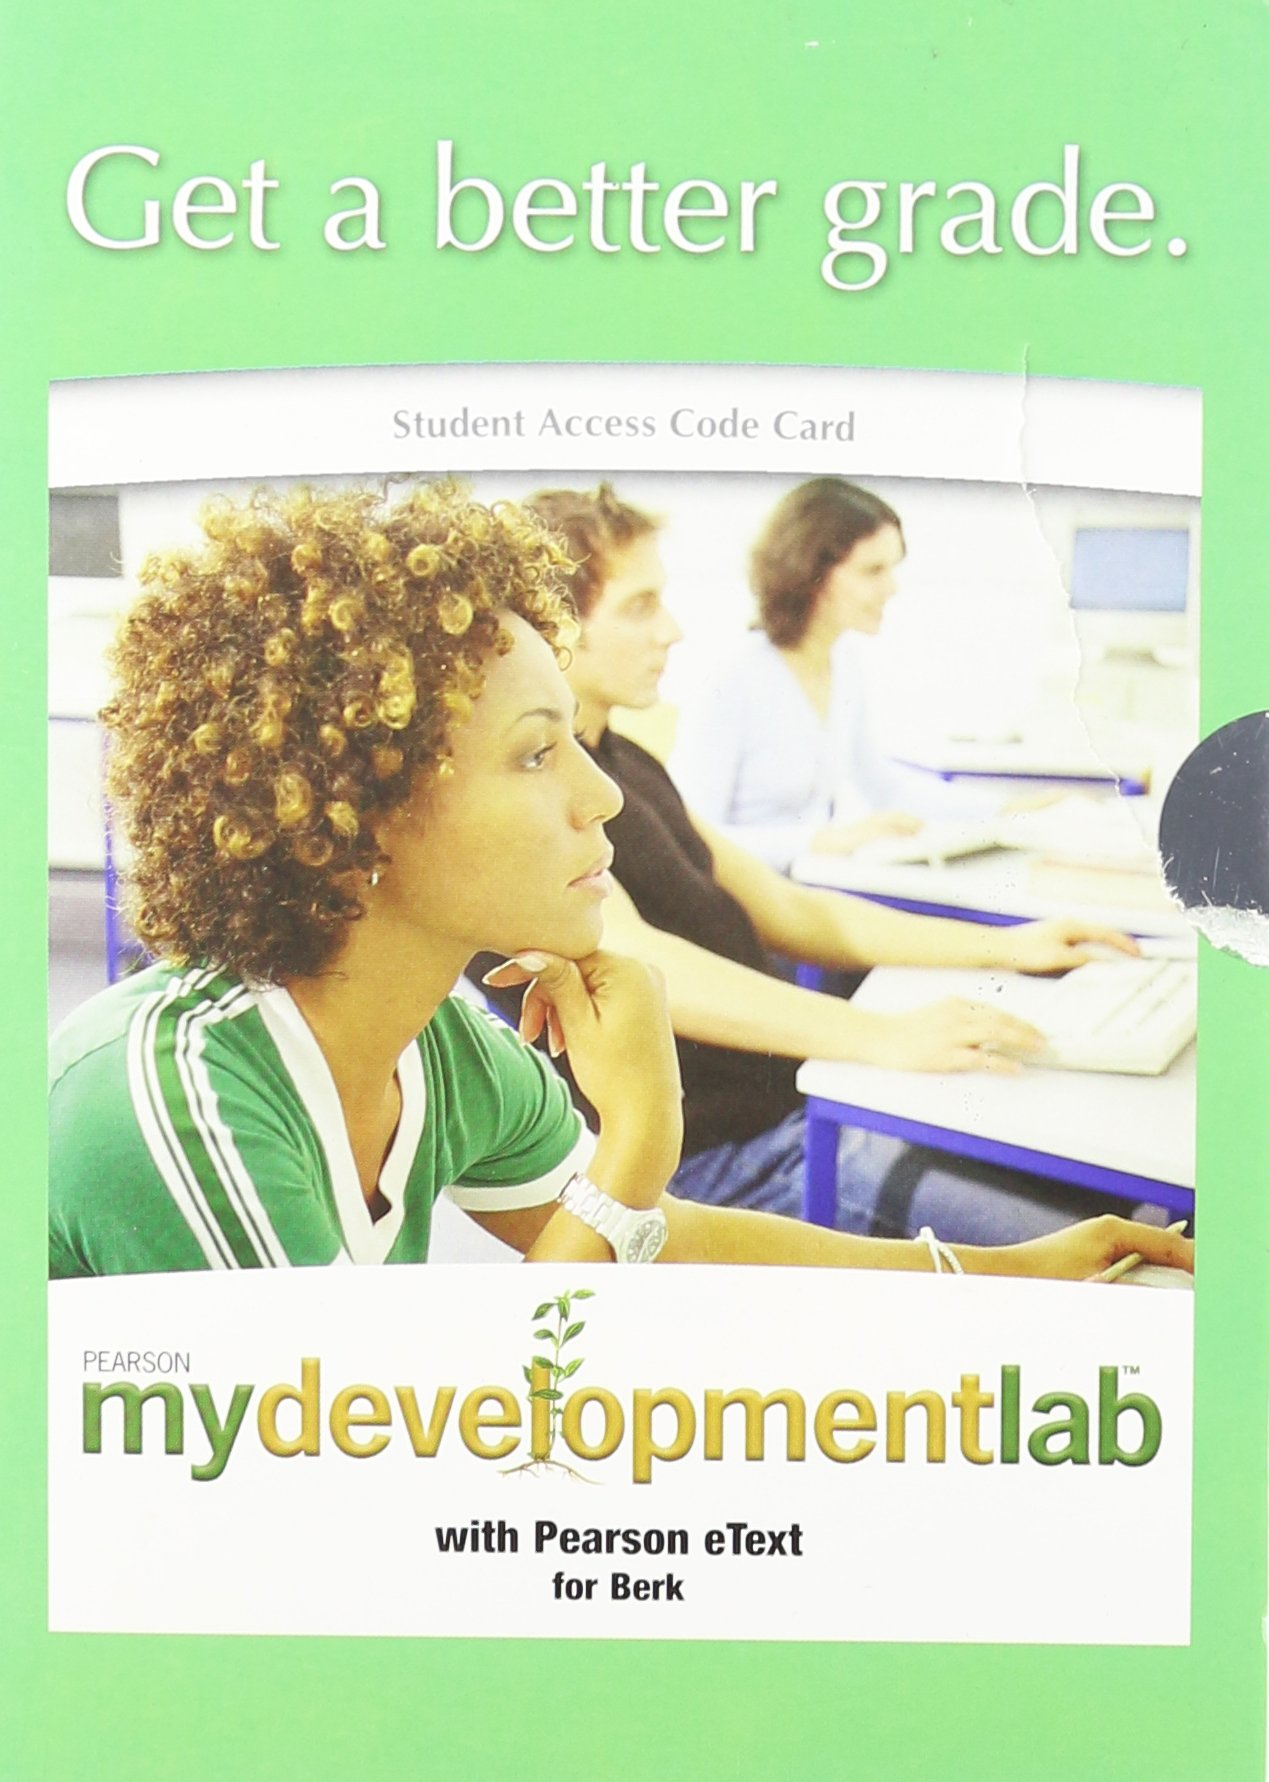 My development lab access code pearson etext for berk pearson my development lab access code pearson etext for berk pearson 9780205669110 amazon books fandeluxe Gallery